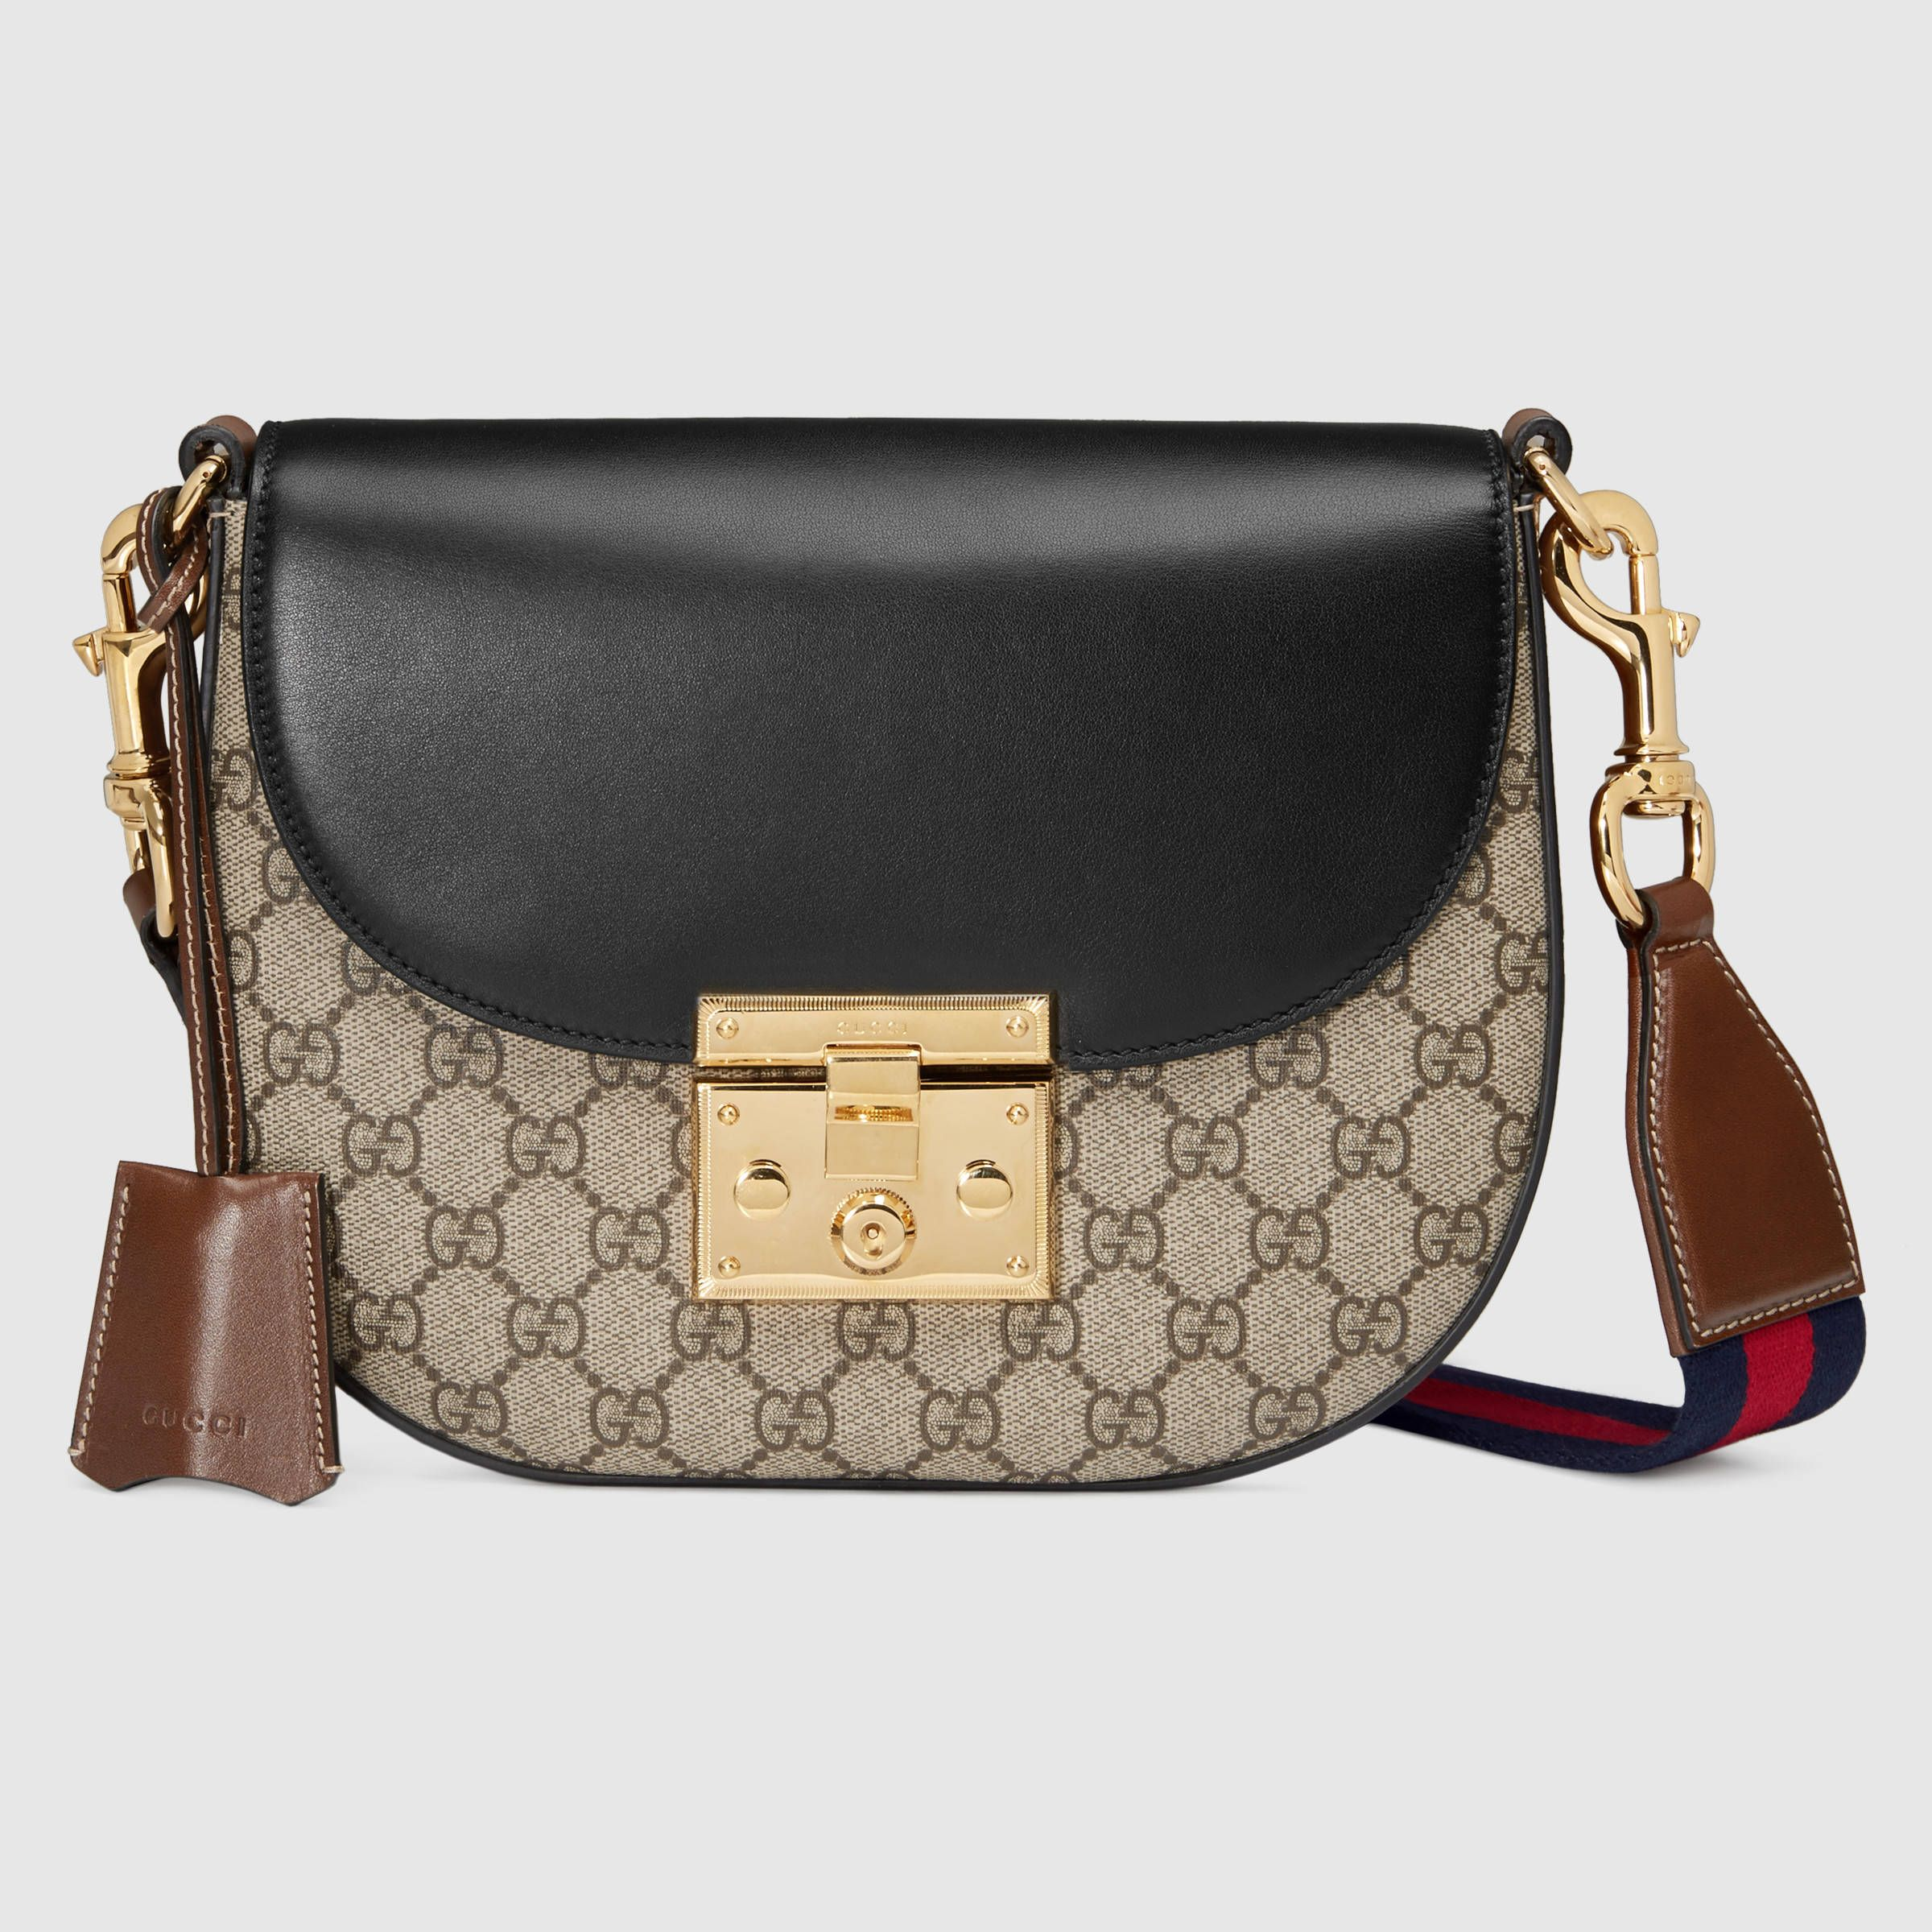 f565f008c7c2 Padlock GG Supreme shoulder bag - Gucci Women's Shoulder Bags  453189K6RCG8982